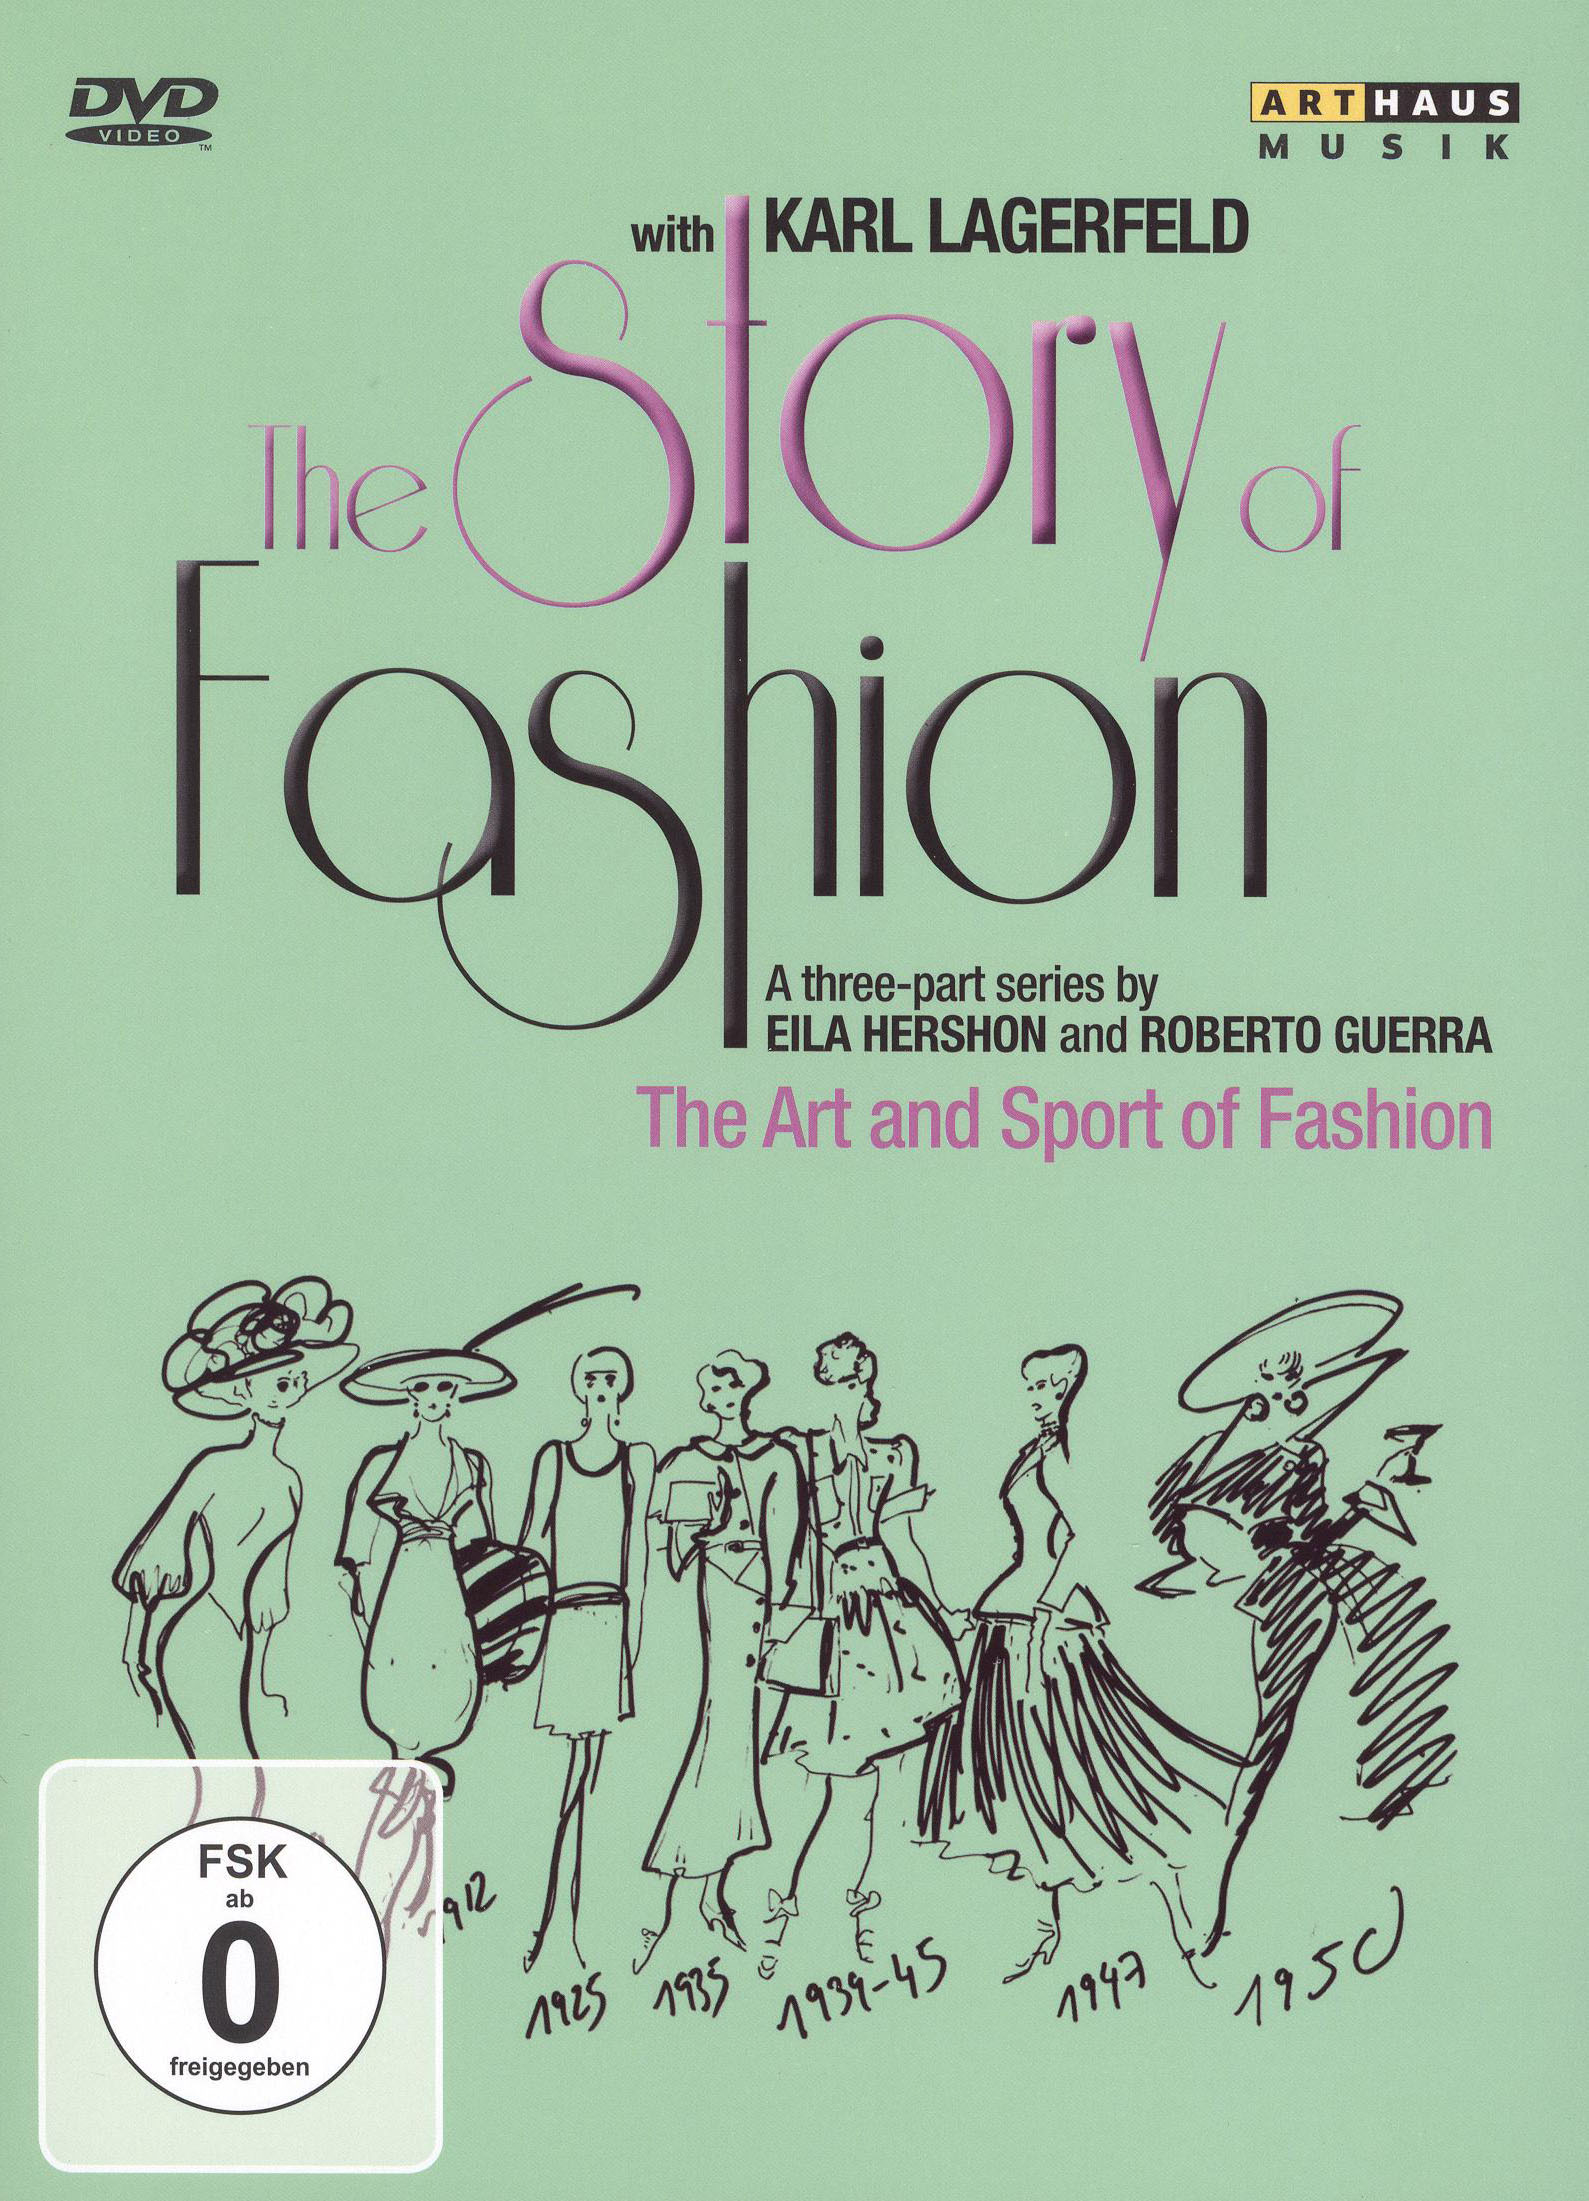 The Story of Fashion, Vol. 2: The Art and Sport of Fashion